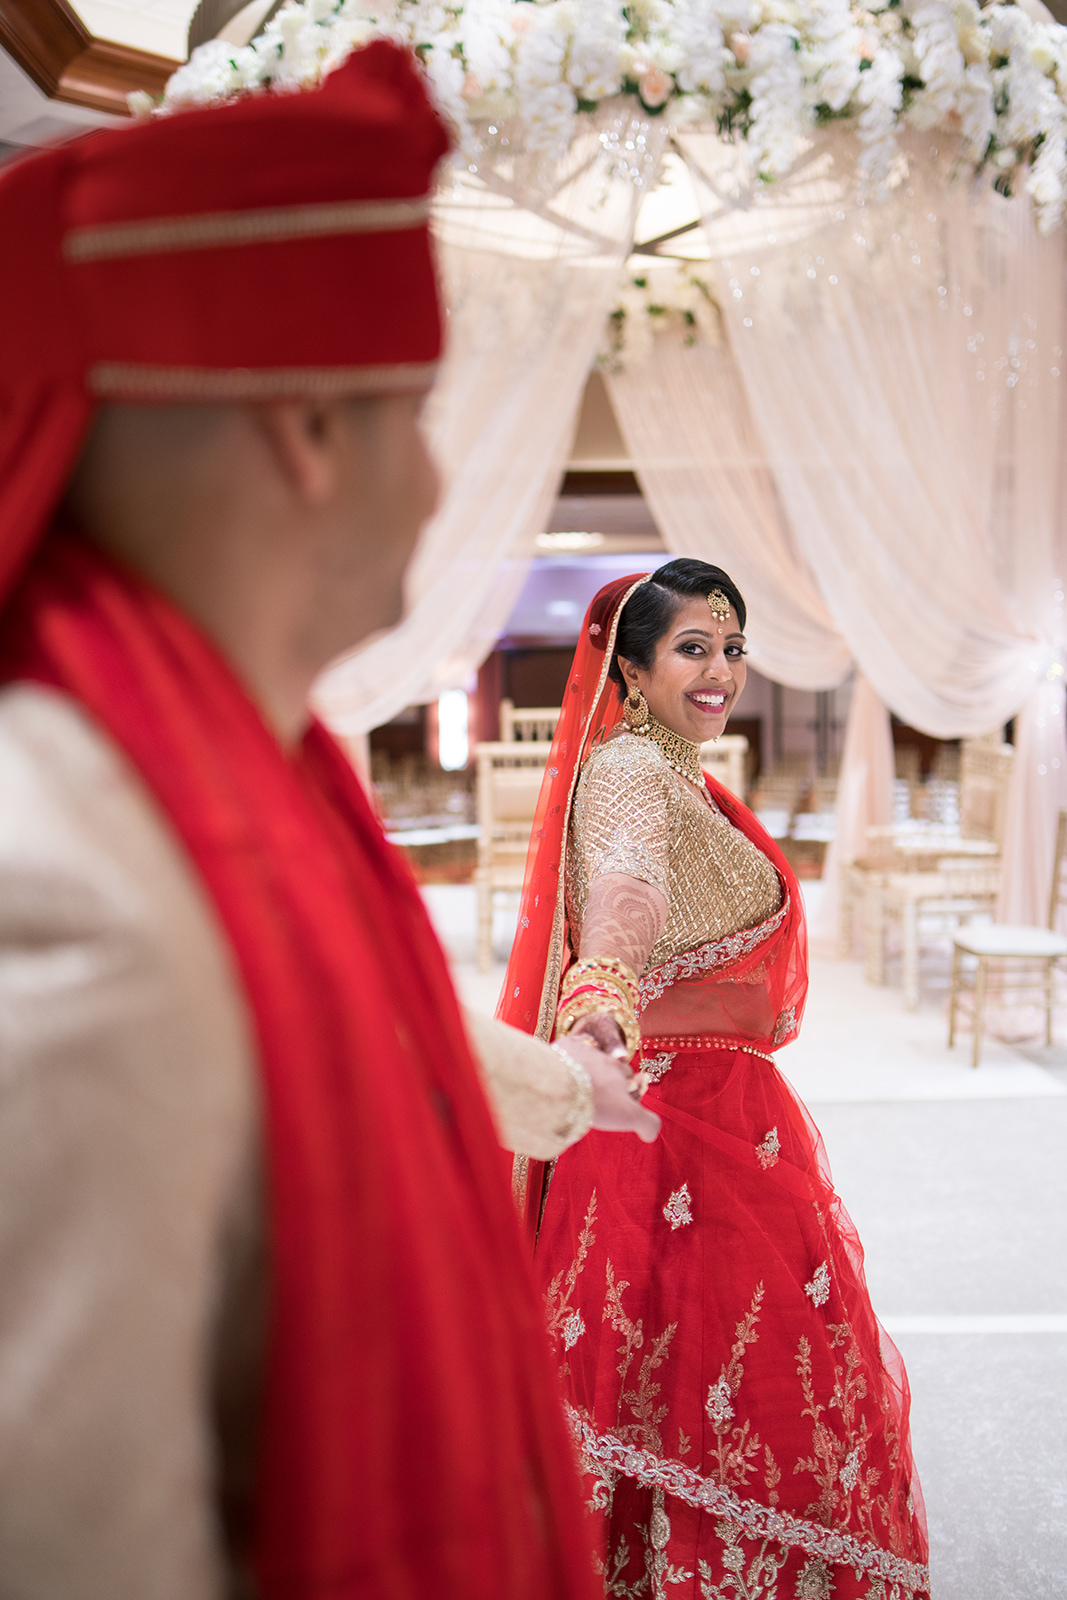 Le Cape Weddings - Swati and Ankur - Sneak Peek -64.jpg